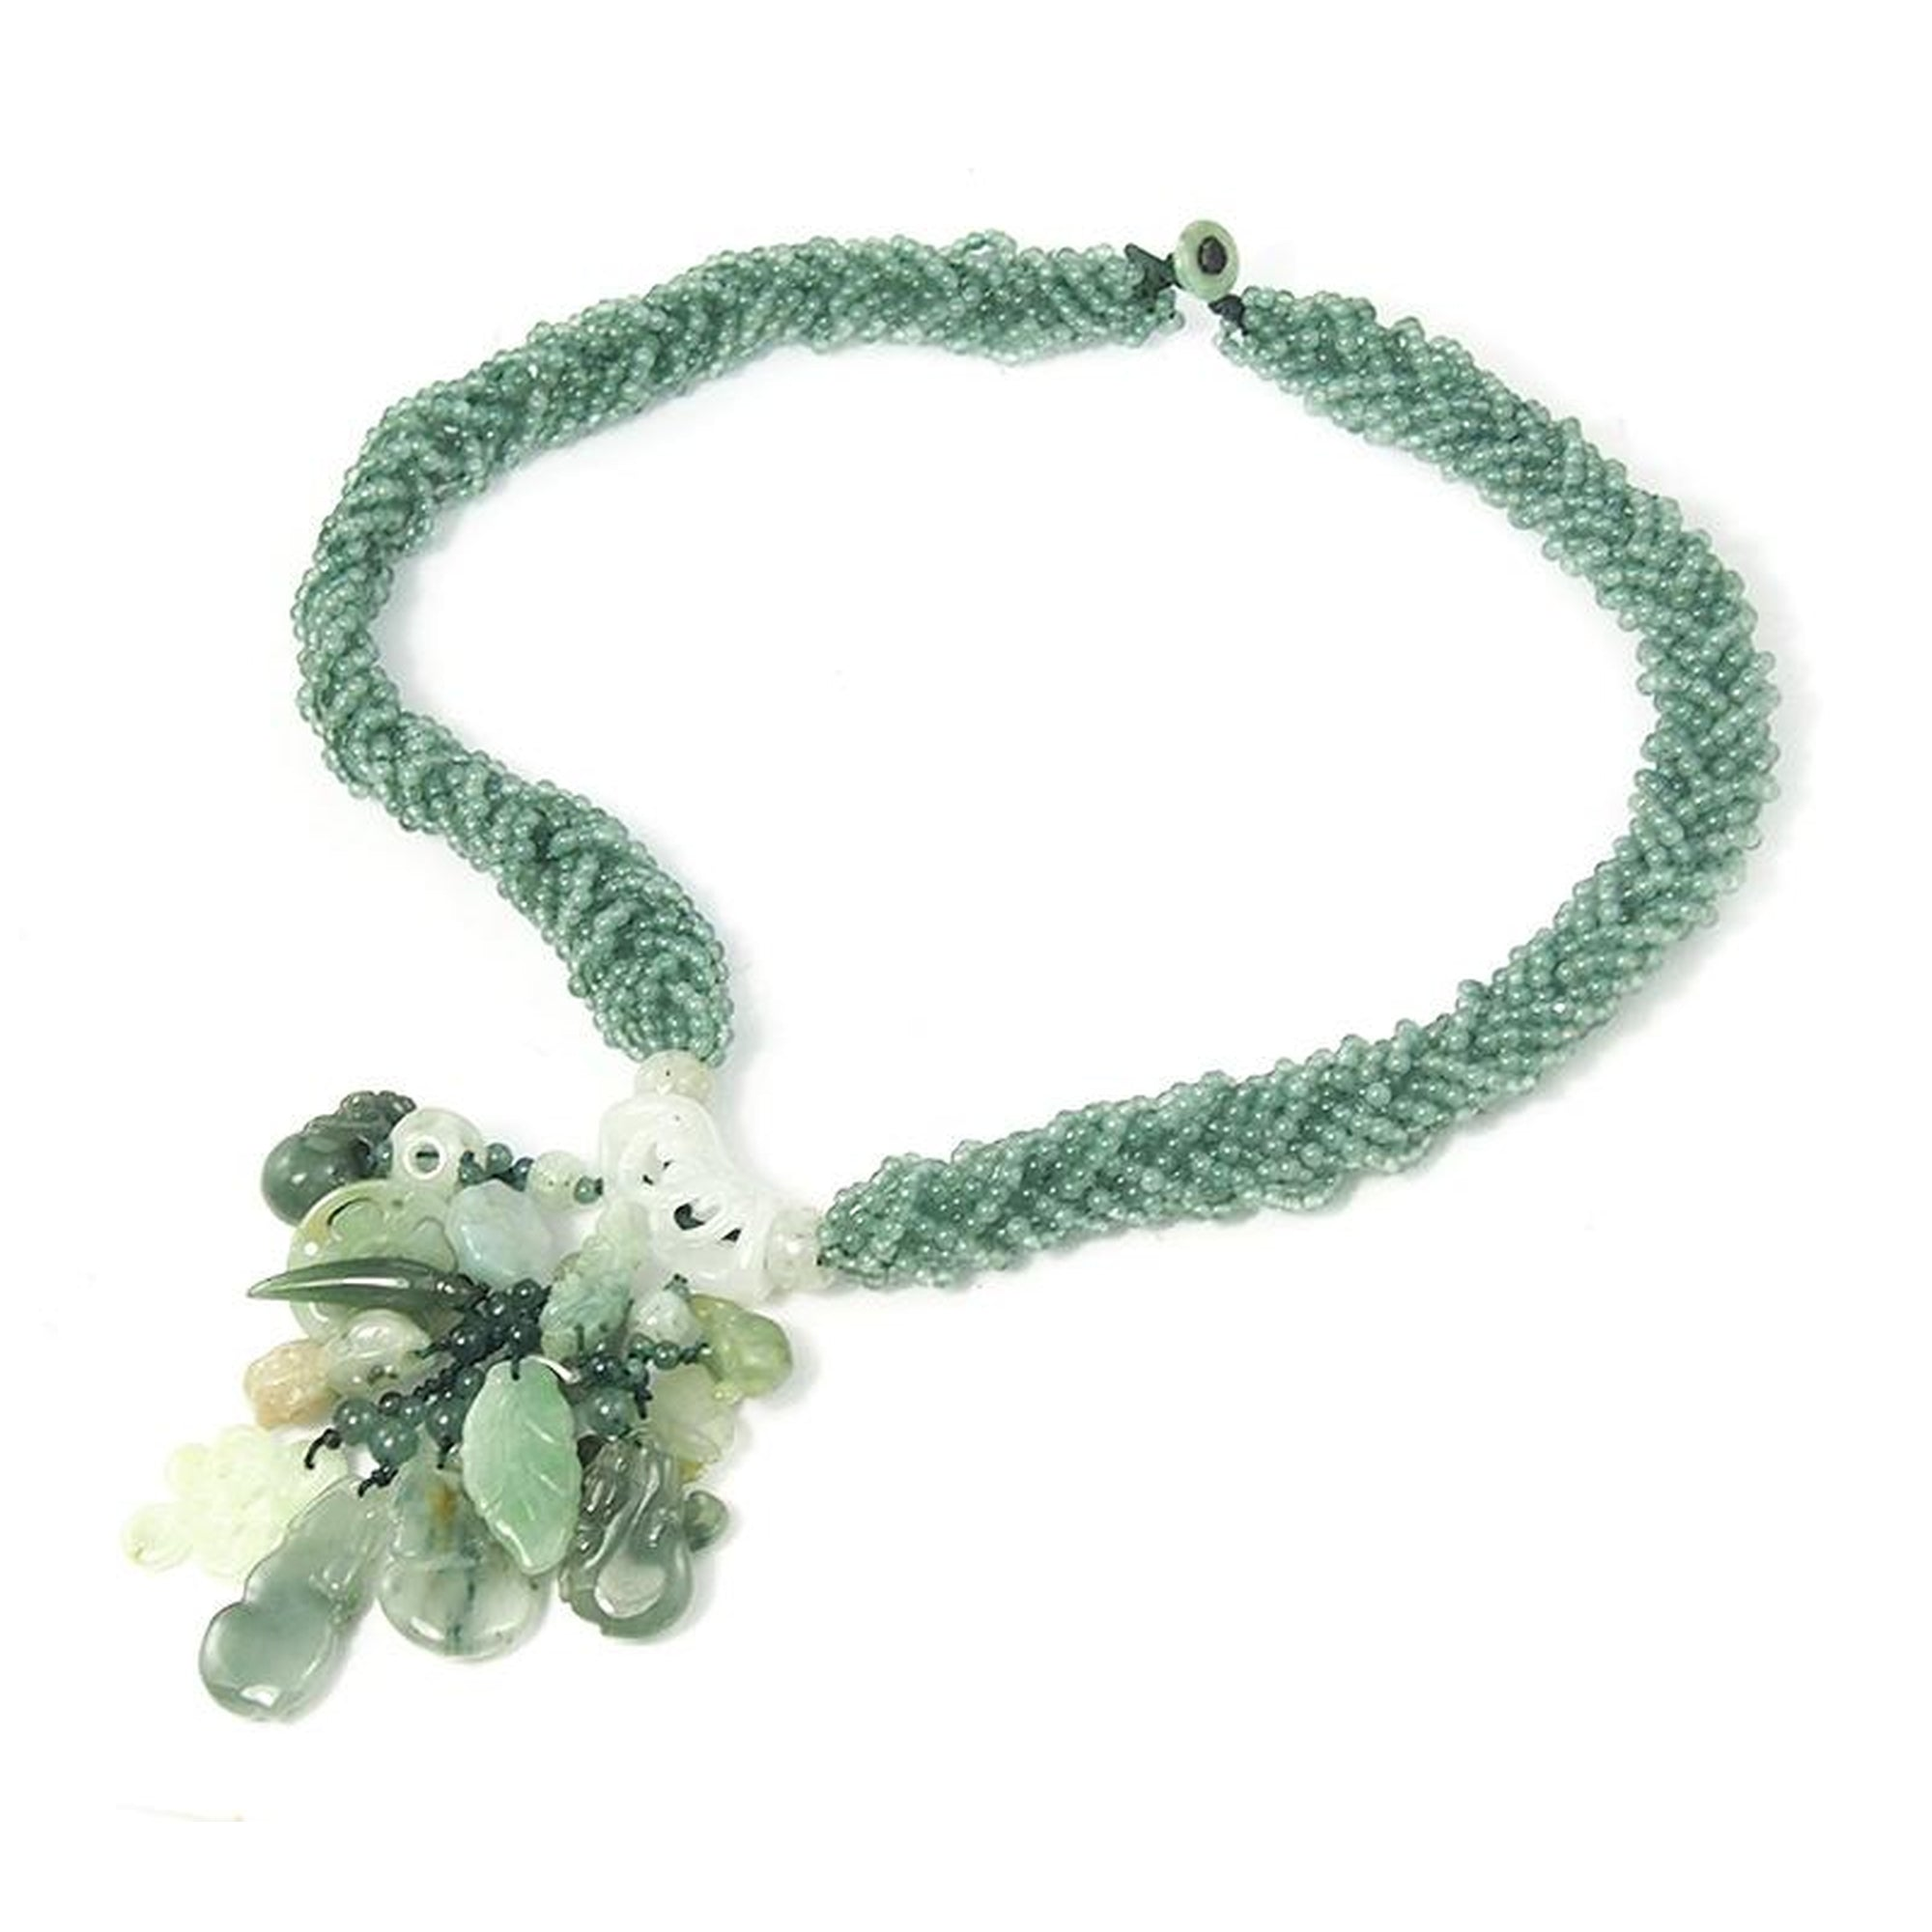 yoga bead zen jewelry mala tigers beads green om necklace p fullxfull jade charm il mantra eye